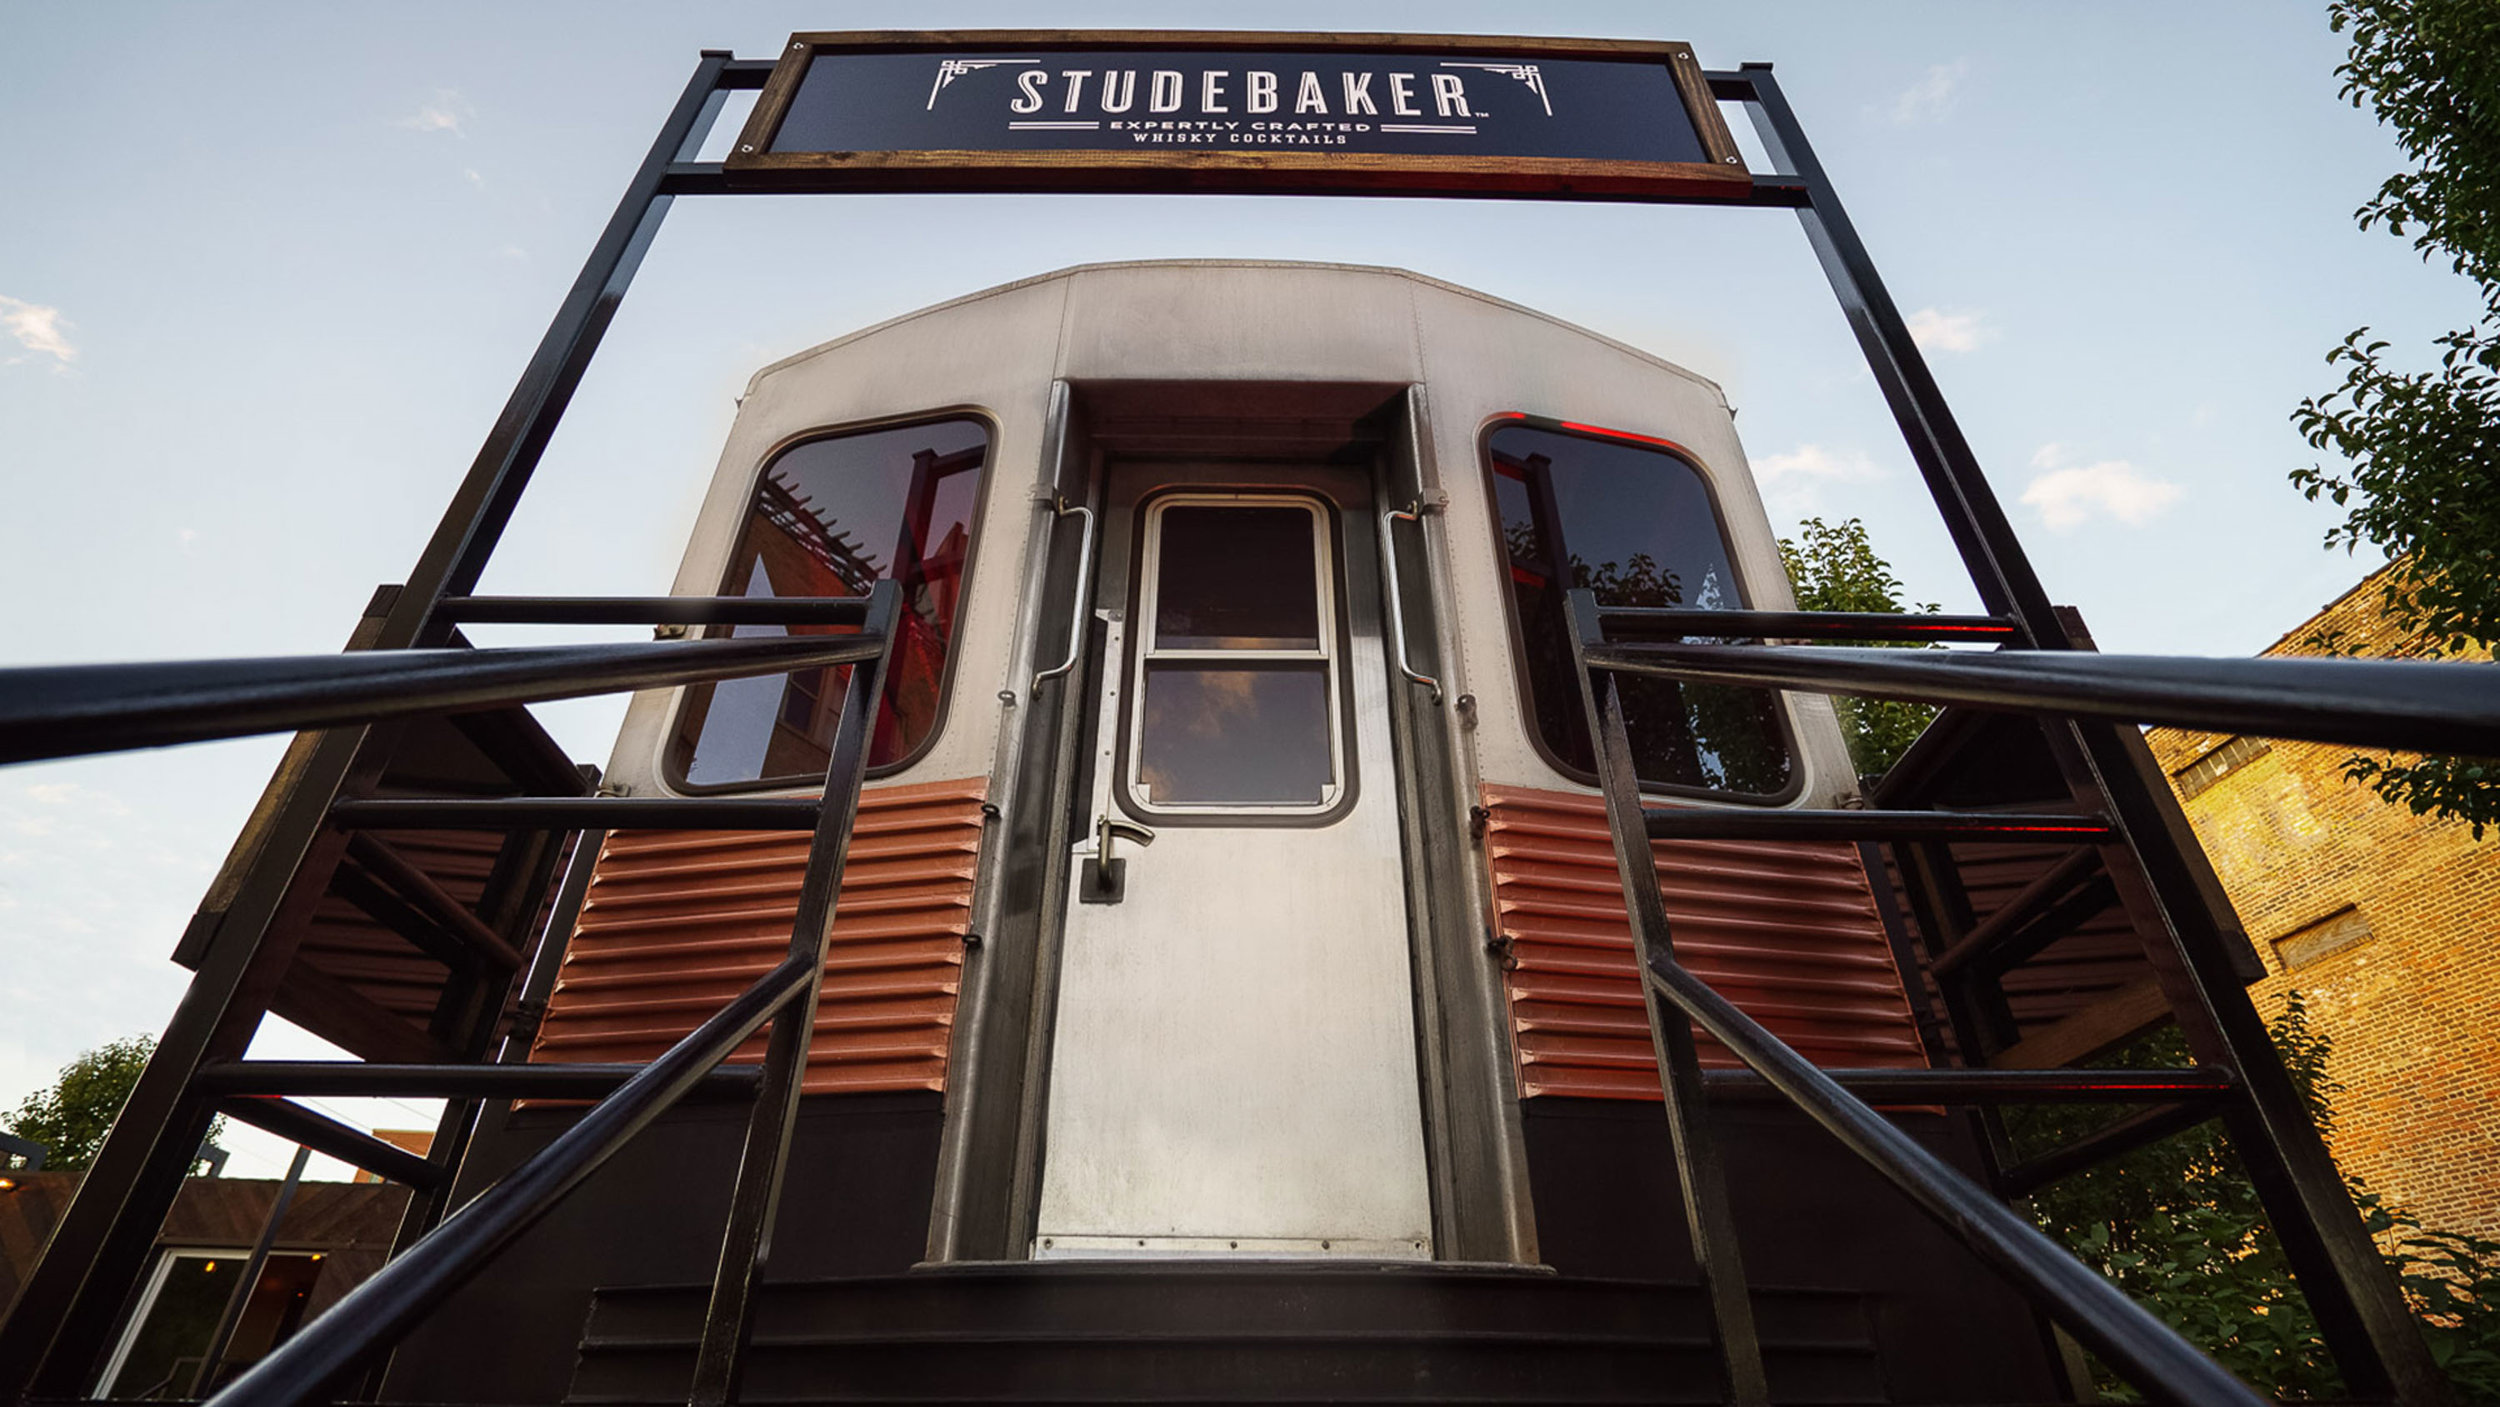 GERTRUDE-INC-Studebaker-Chicago-CTA-Train-Club-Car-01.jpg